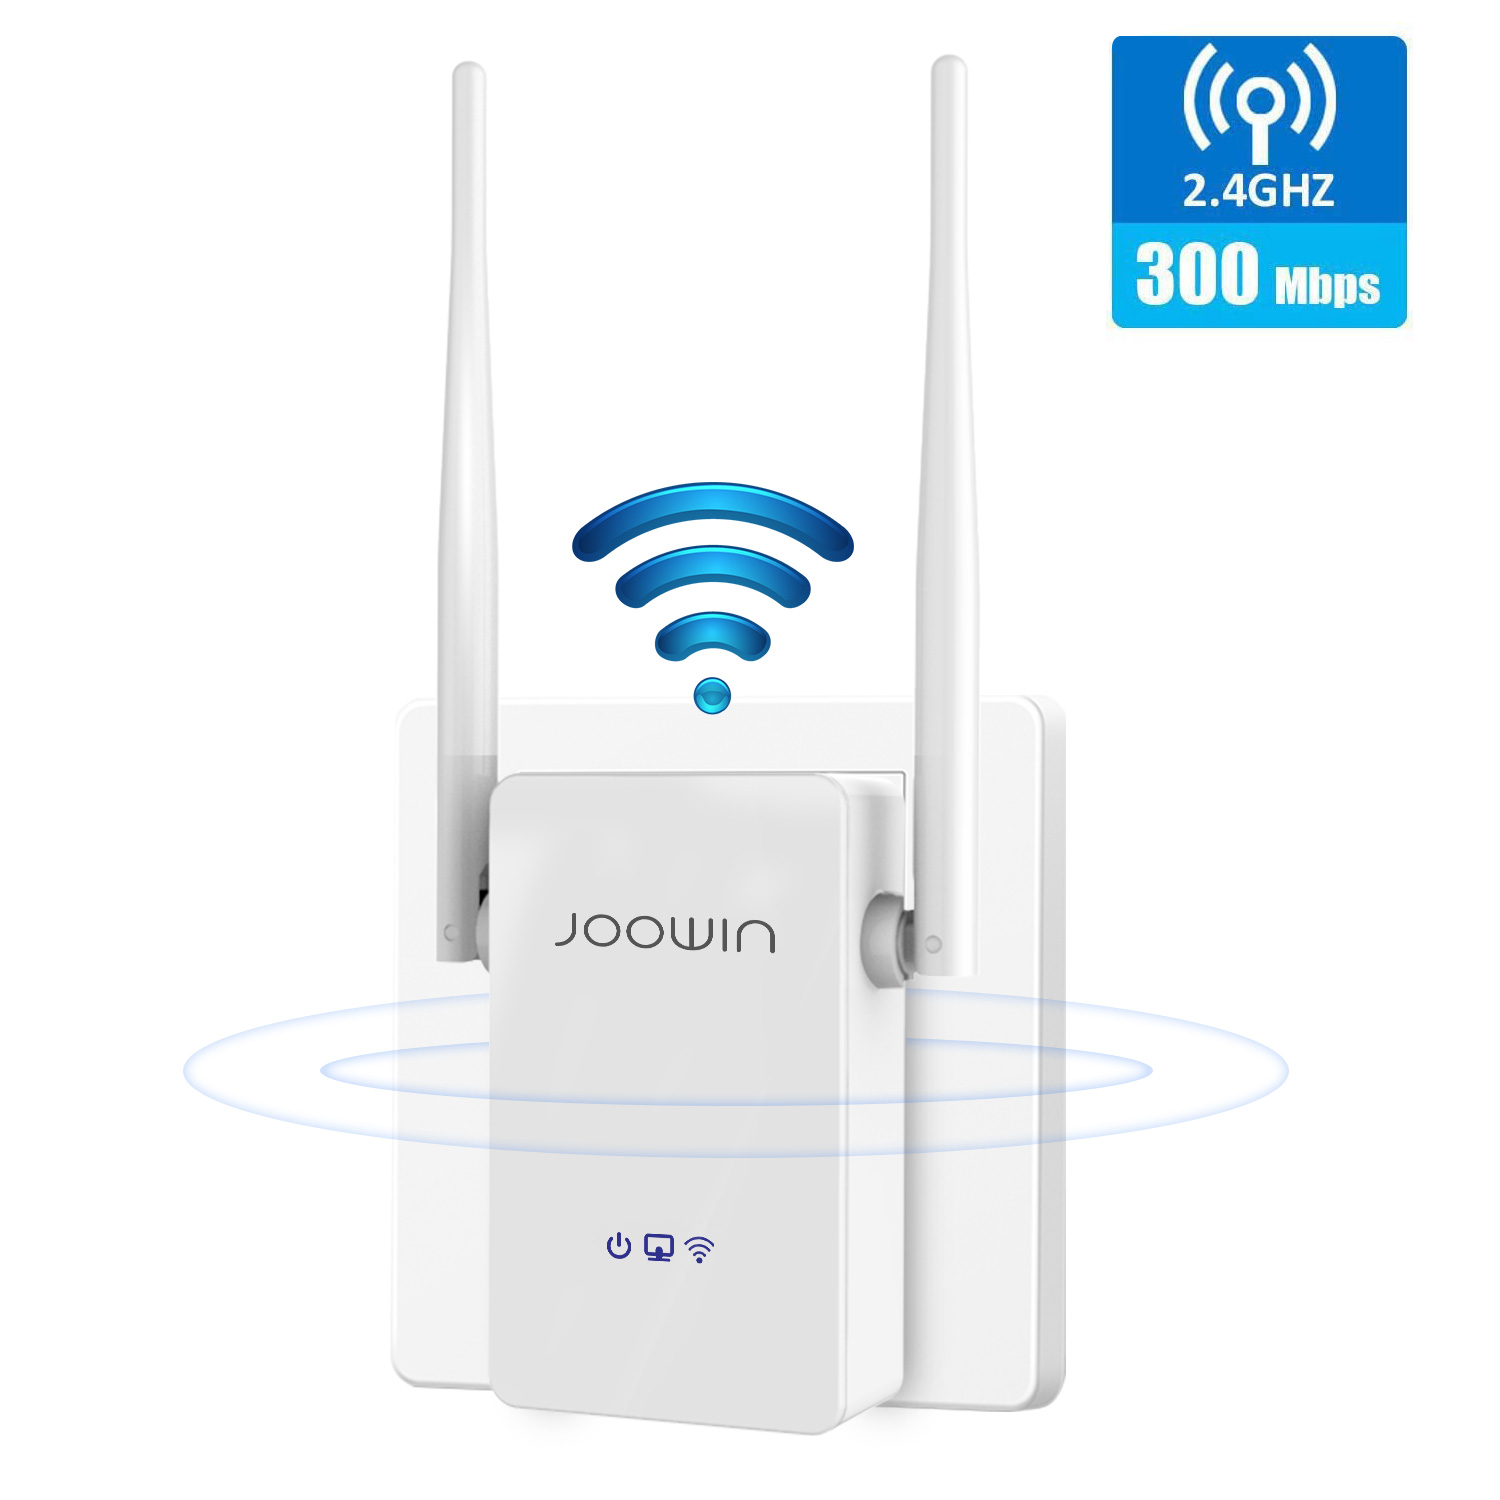 300M/1200Mbps 2.4G/5GHz Wireless Extender 802.11ac Wifi Repeater Powerful Wi-Fi Router ​Long Range Wlan WiFi Amplifier 4